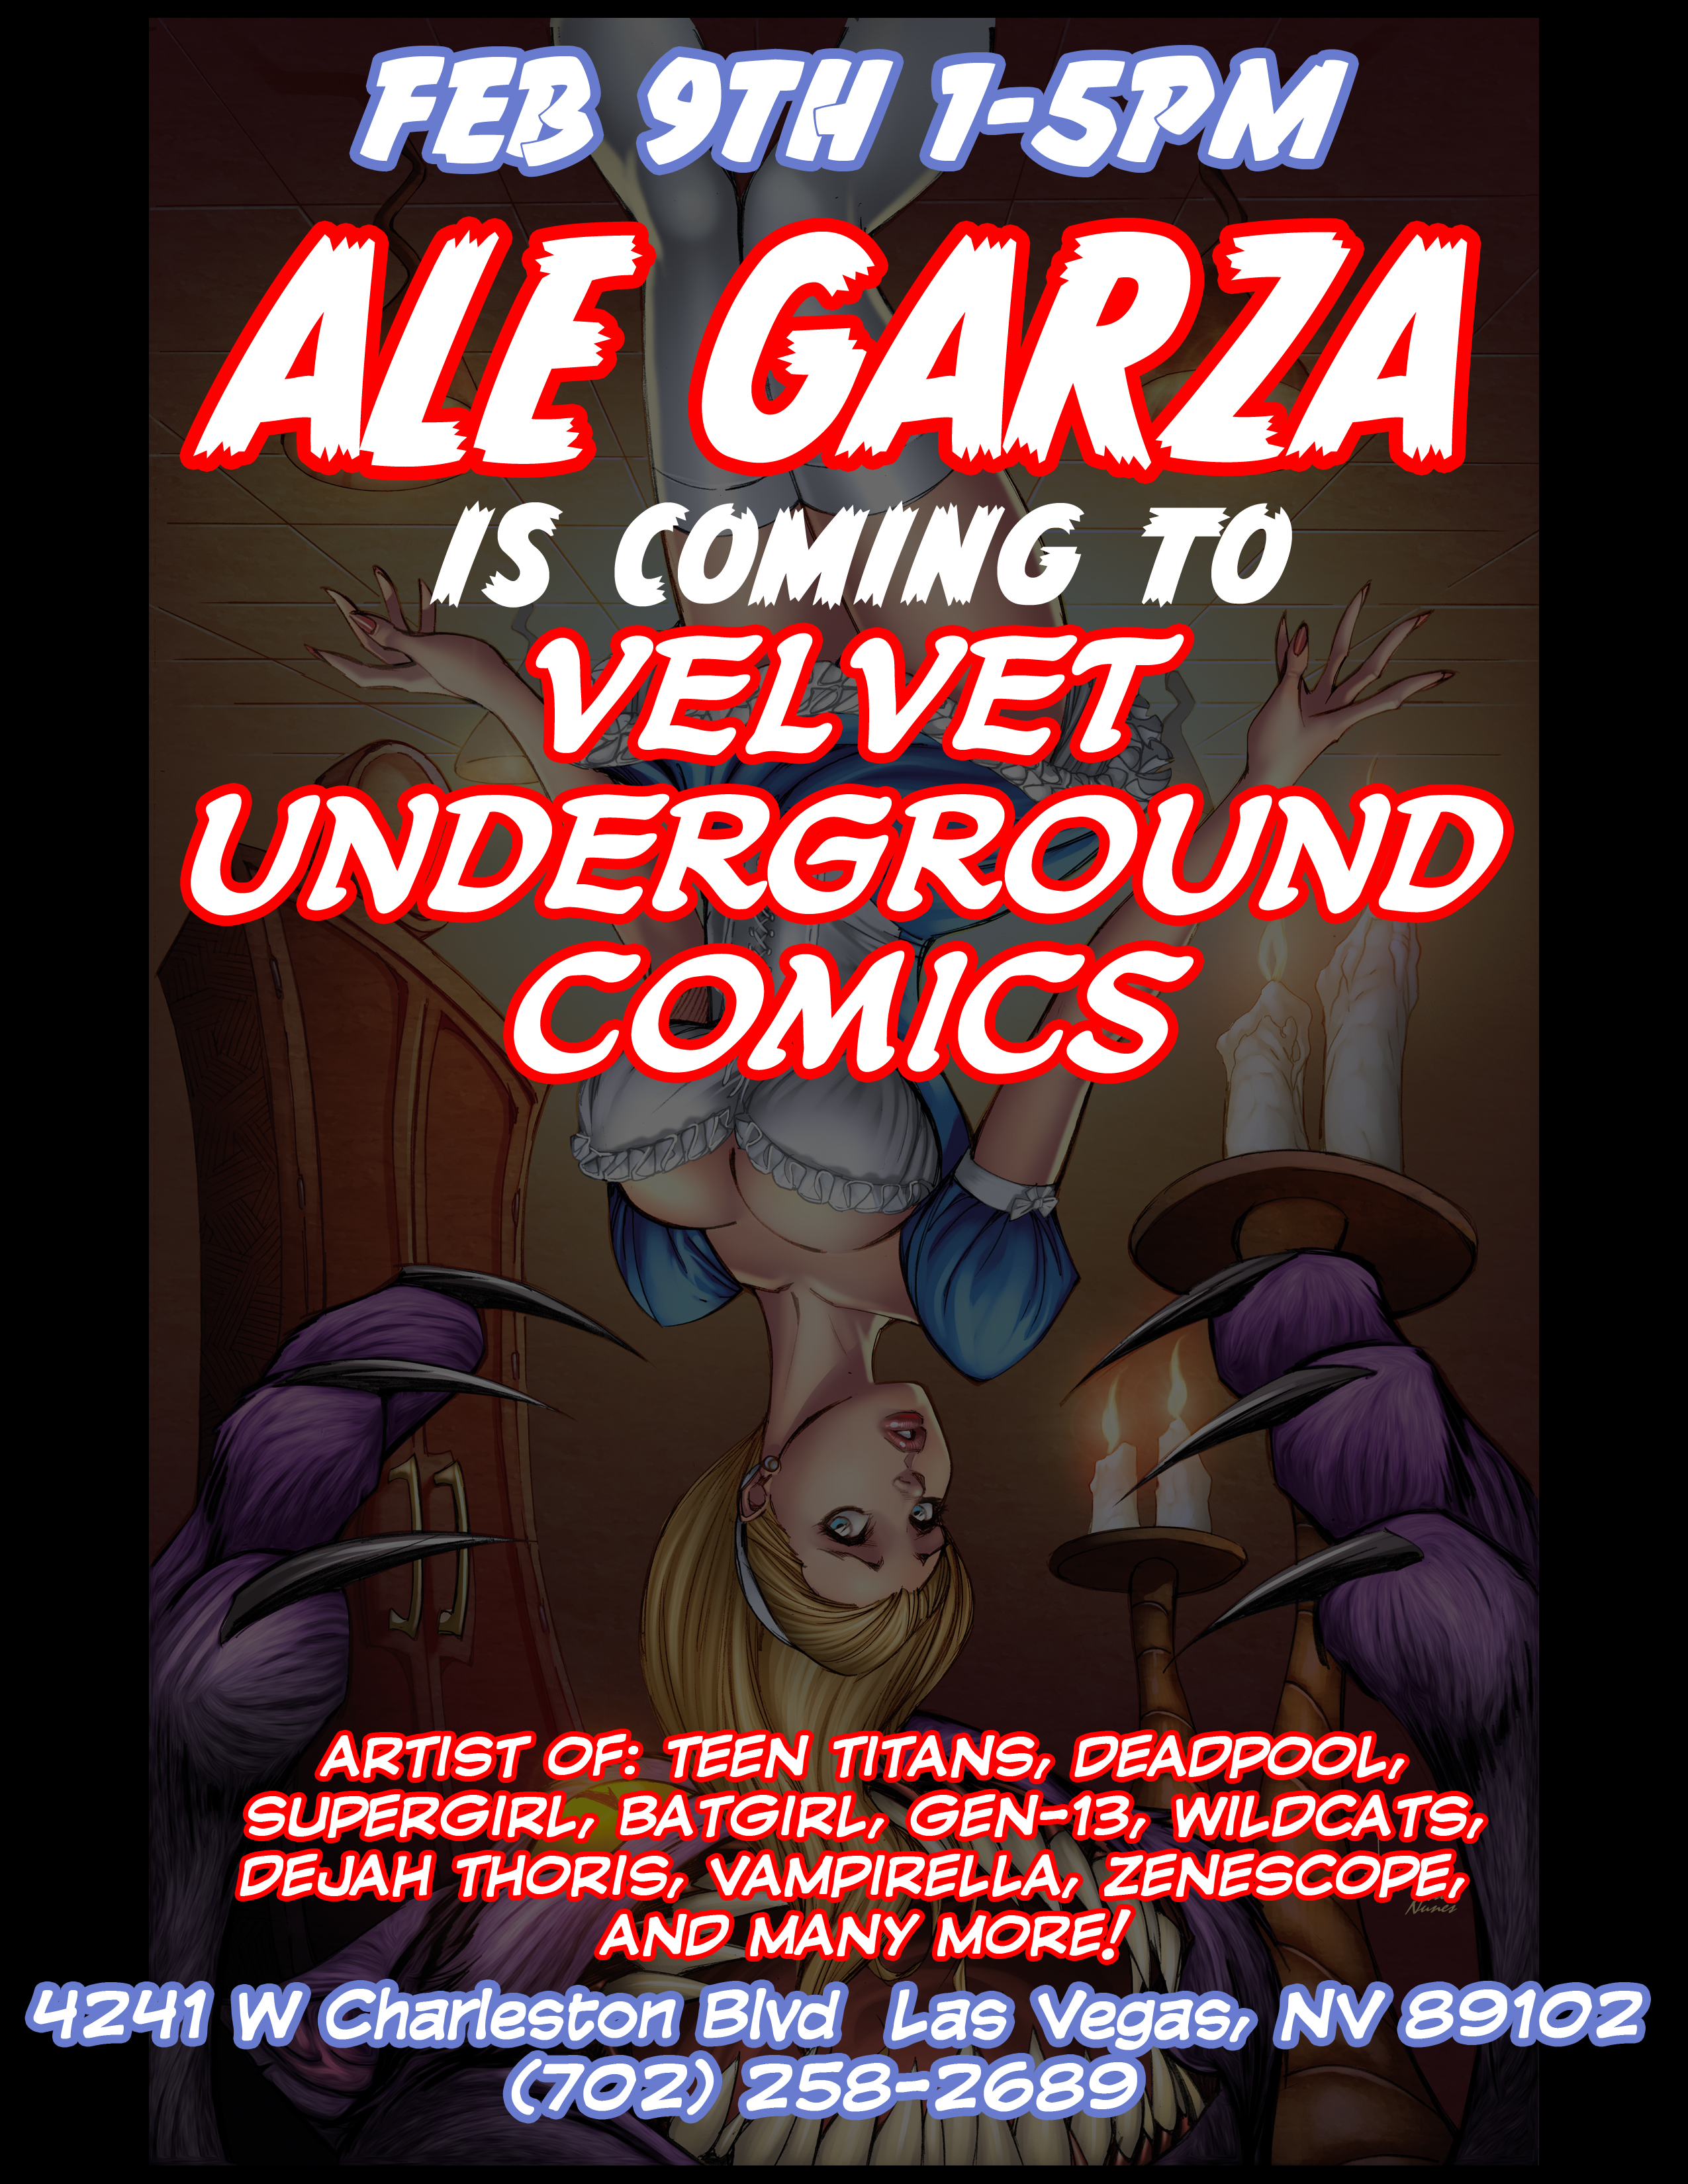 VELVETUNDERGROUNDFLYER Artist Ale Garza Signing at Velvet Underground Comics in Las Vegas Saturday Feb.9...1 5pm!